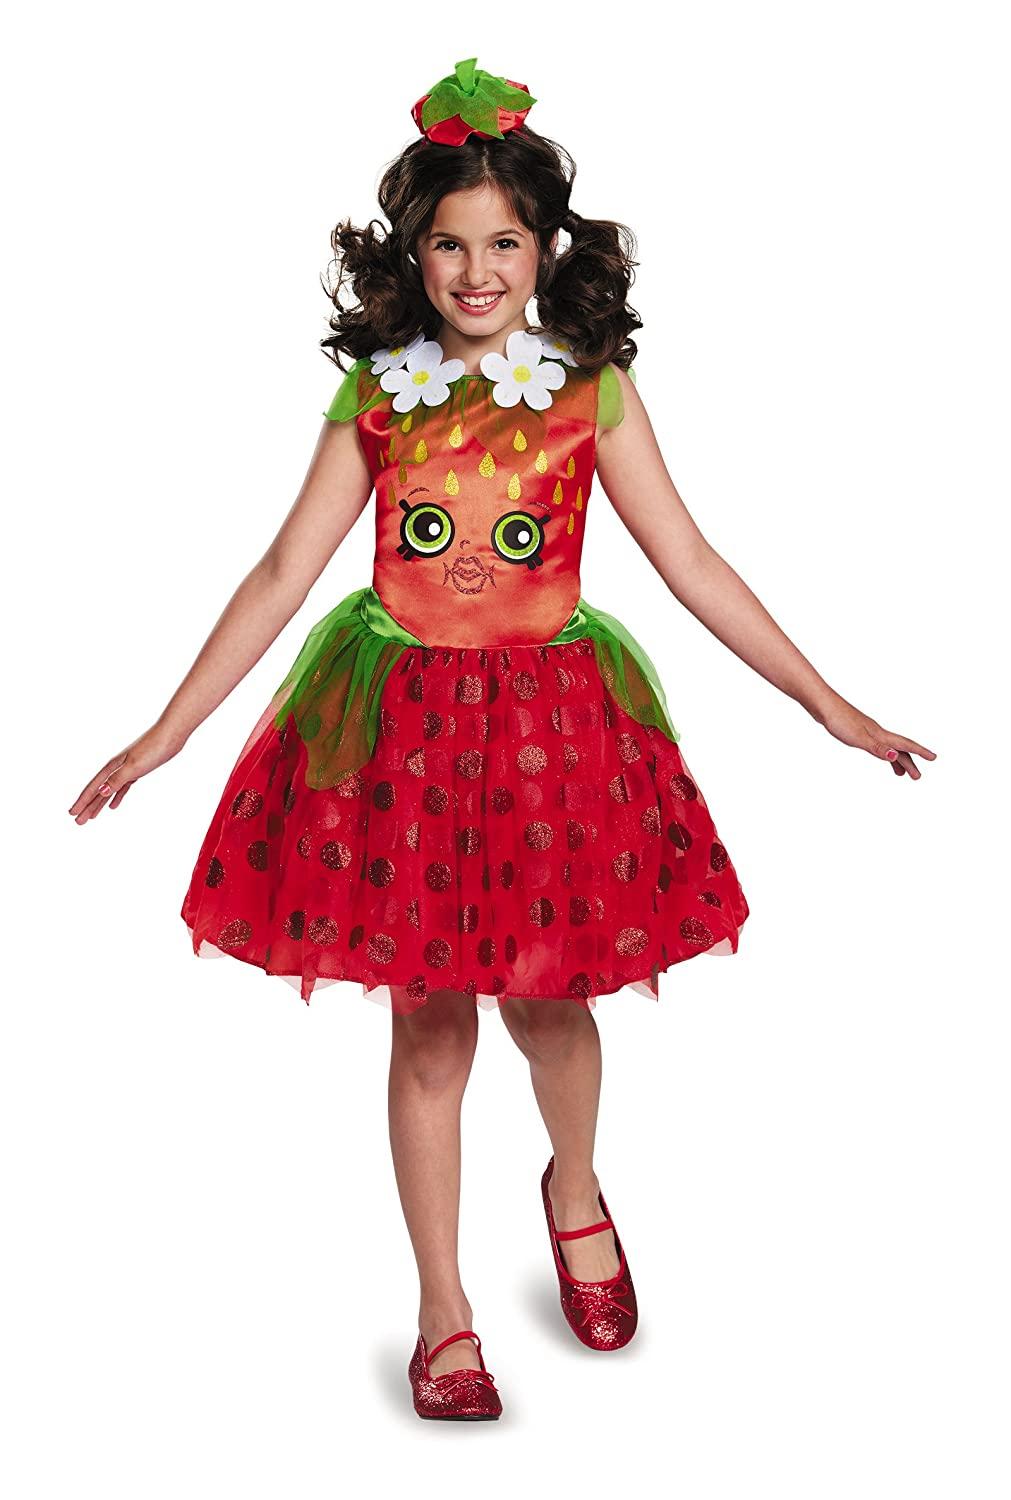 Shopkins Strawberry Classic Costume, One Color, Medium/7-8 97978K